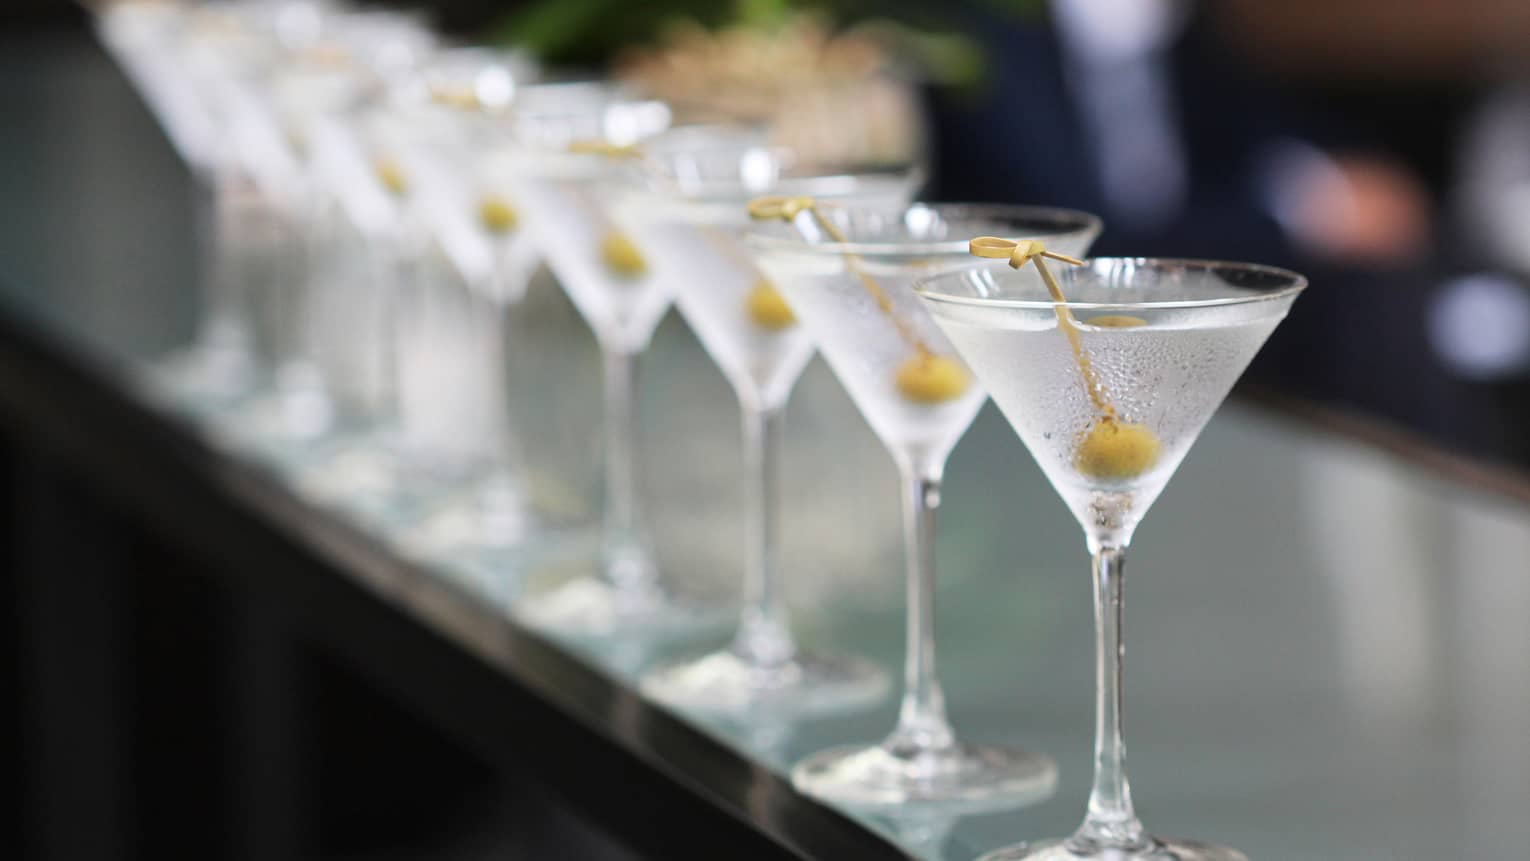 Row of tall martini glasses with green olives on toothpicks